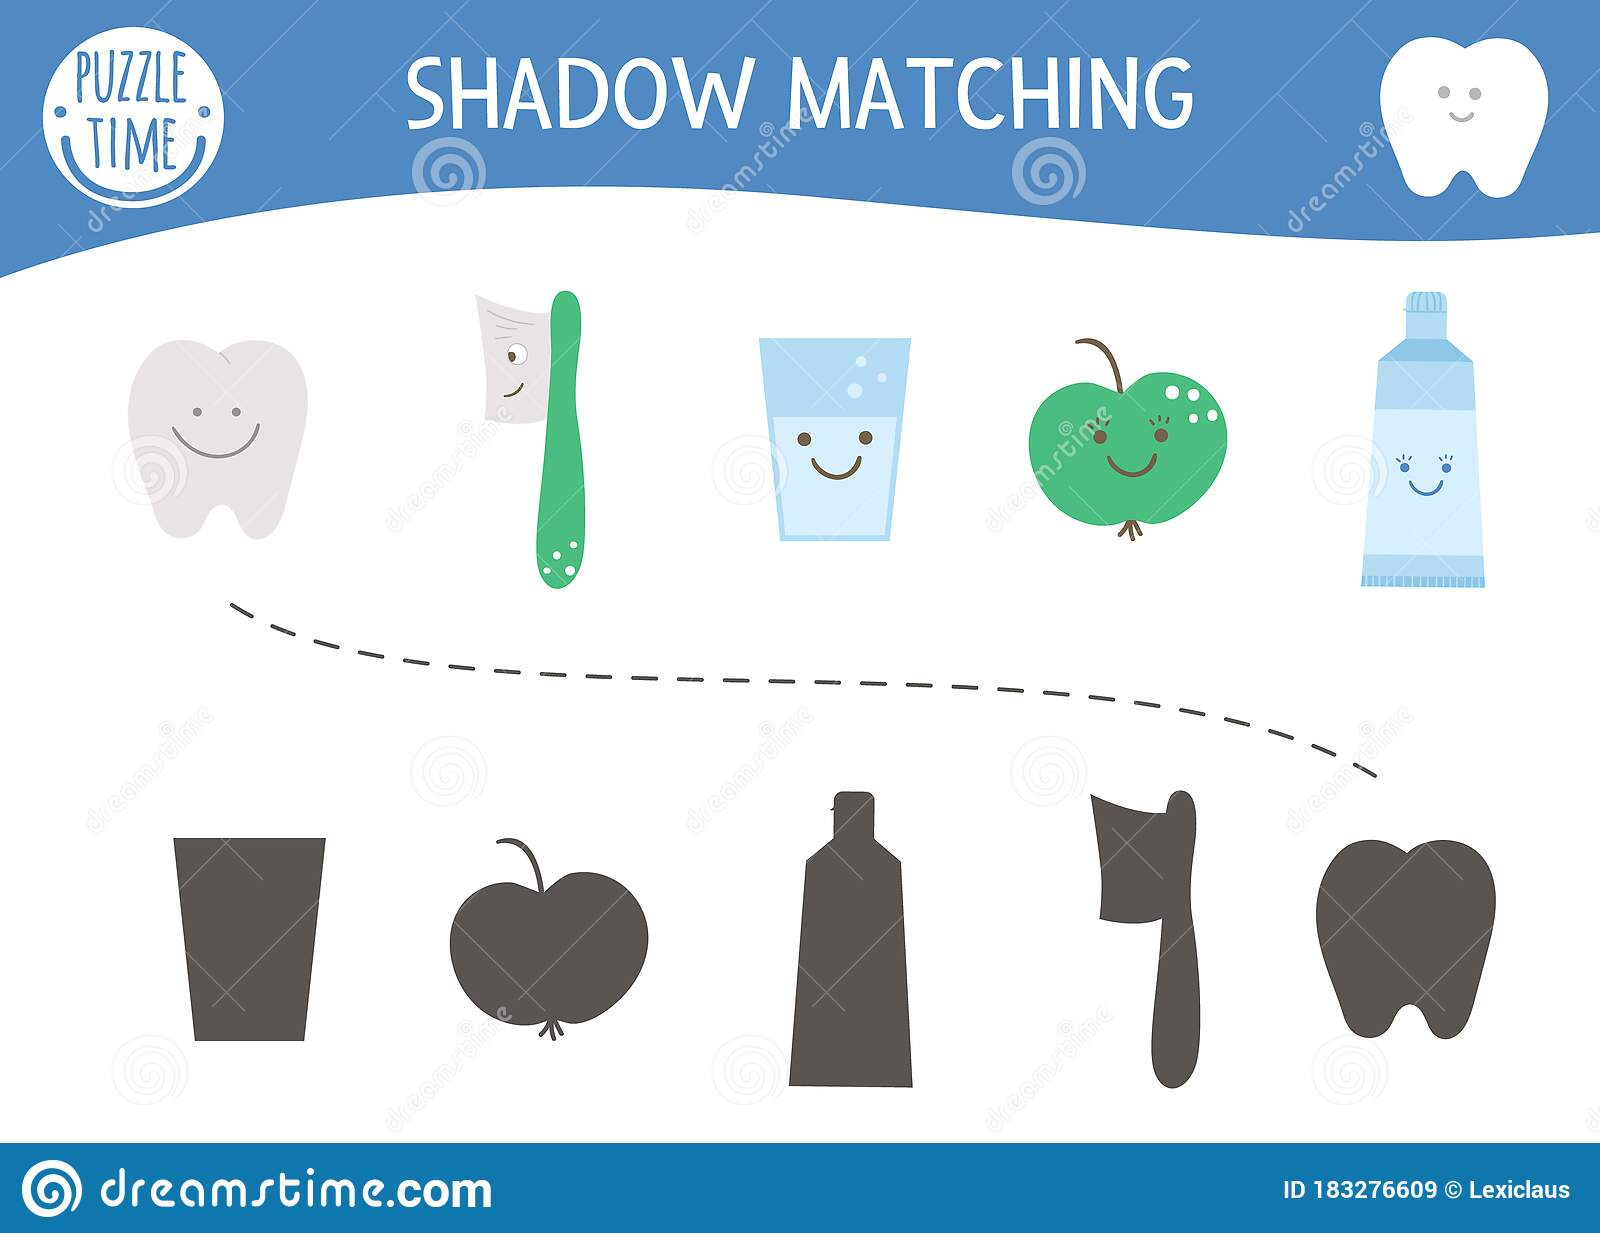 Shadow Matching Activity For Children With Cute Dental